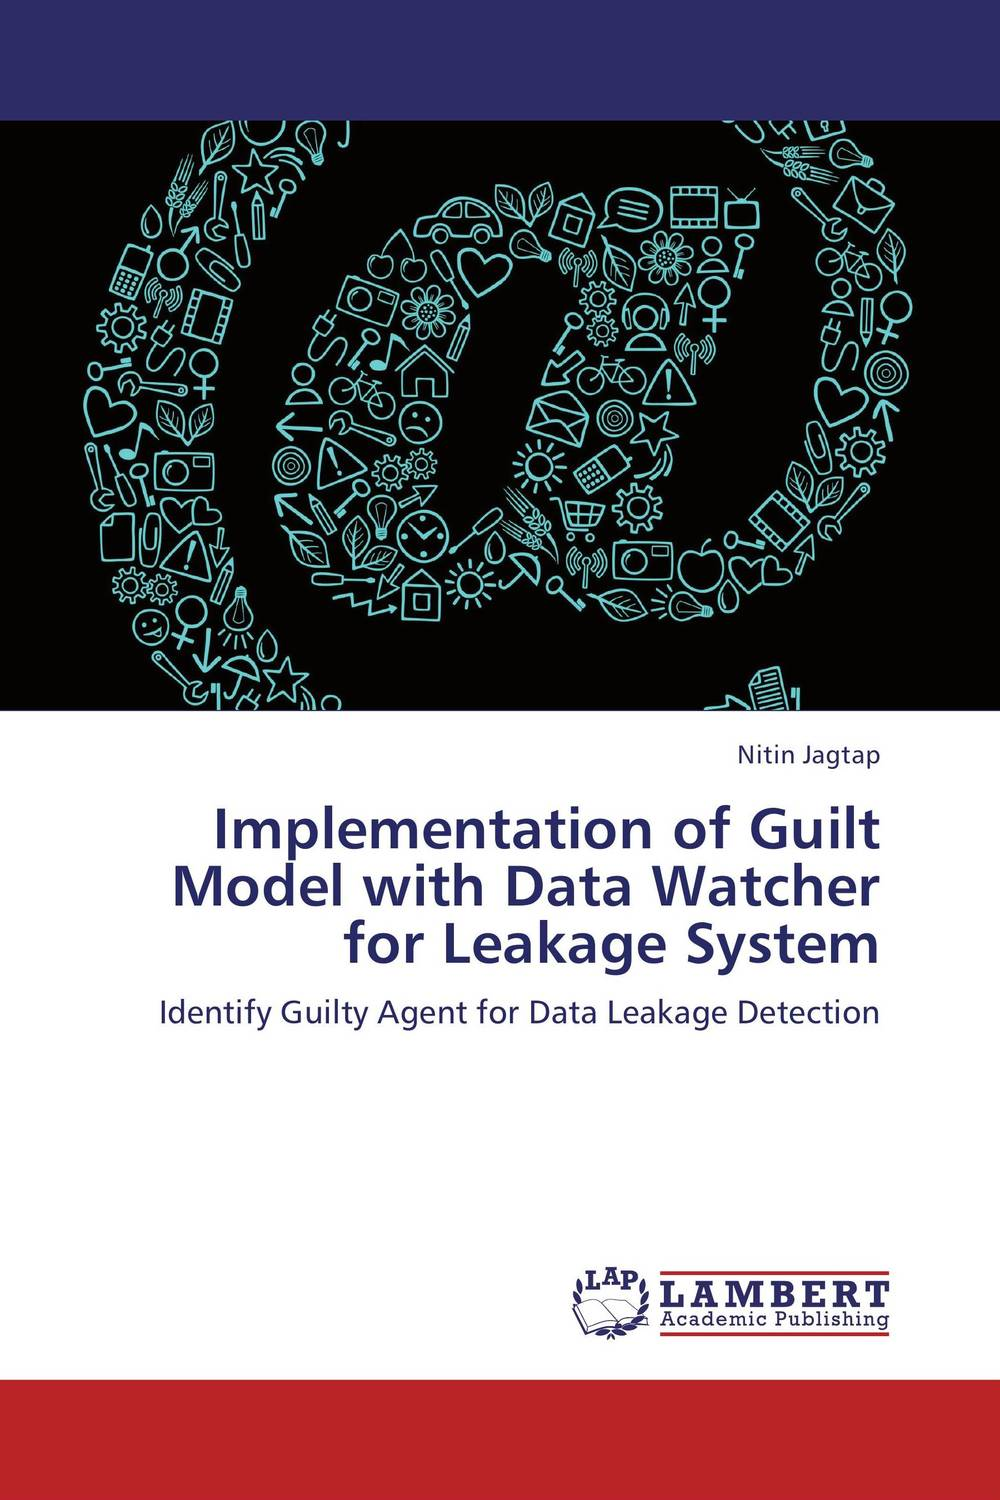 купить Implementation of Guilt Model with Data Watcher for Leakage System недорого